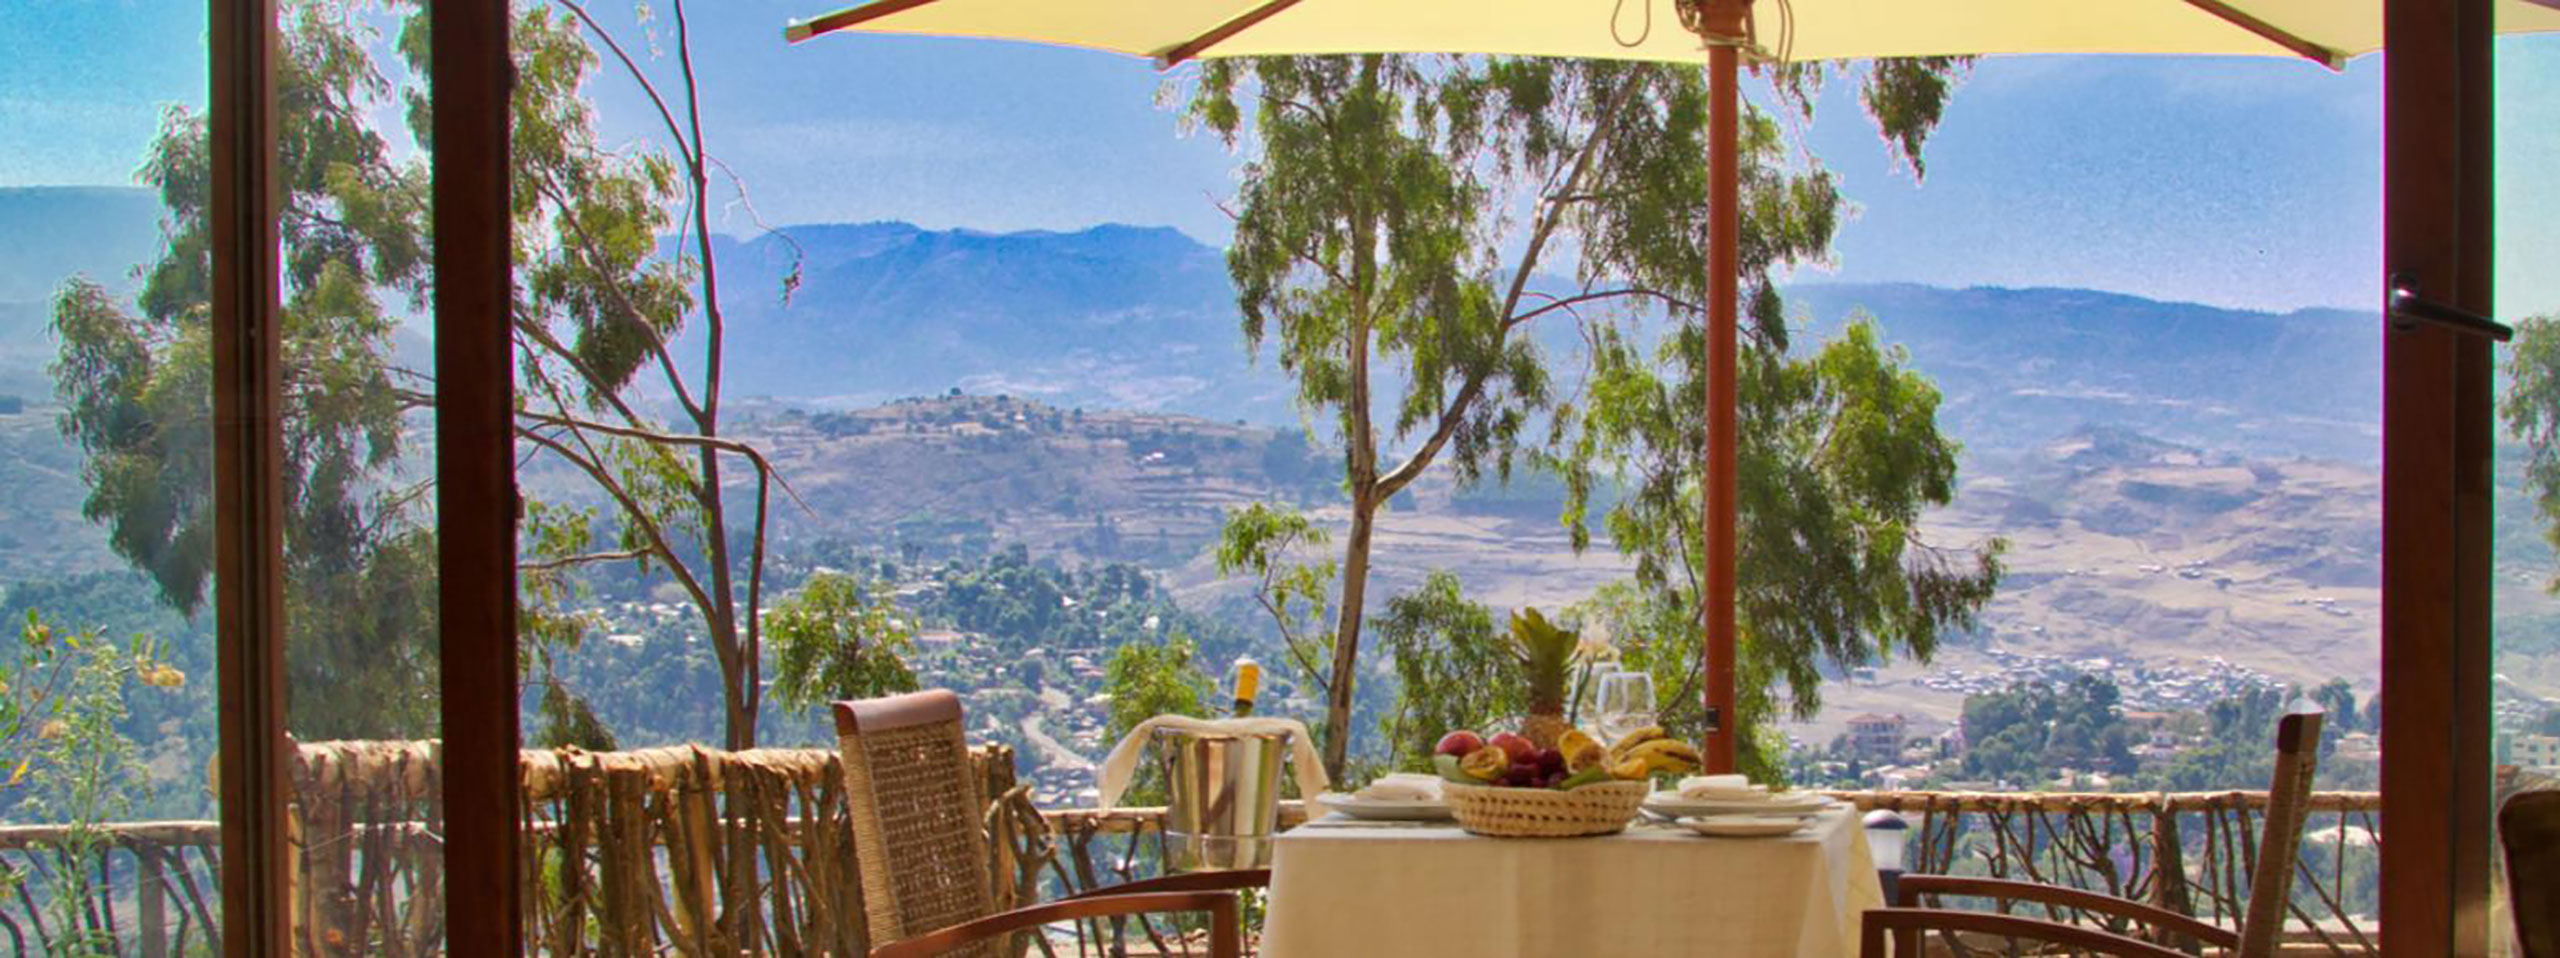 Gondar Hills Hotel dining on the terrace with sweeping panoramic views of Gondar, Ethiopia